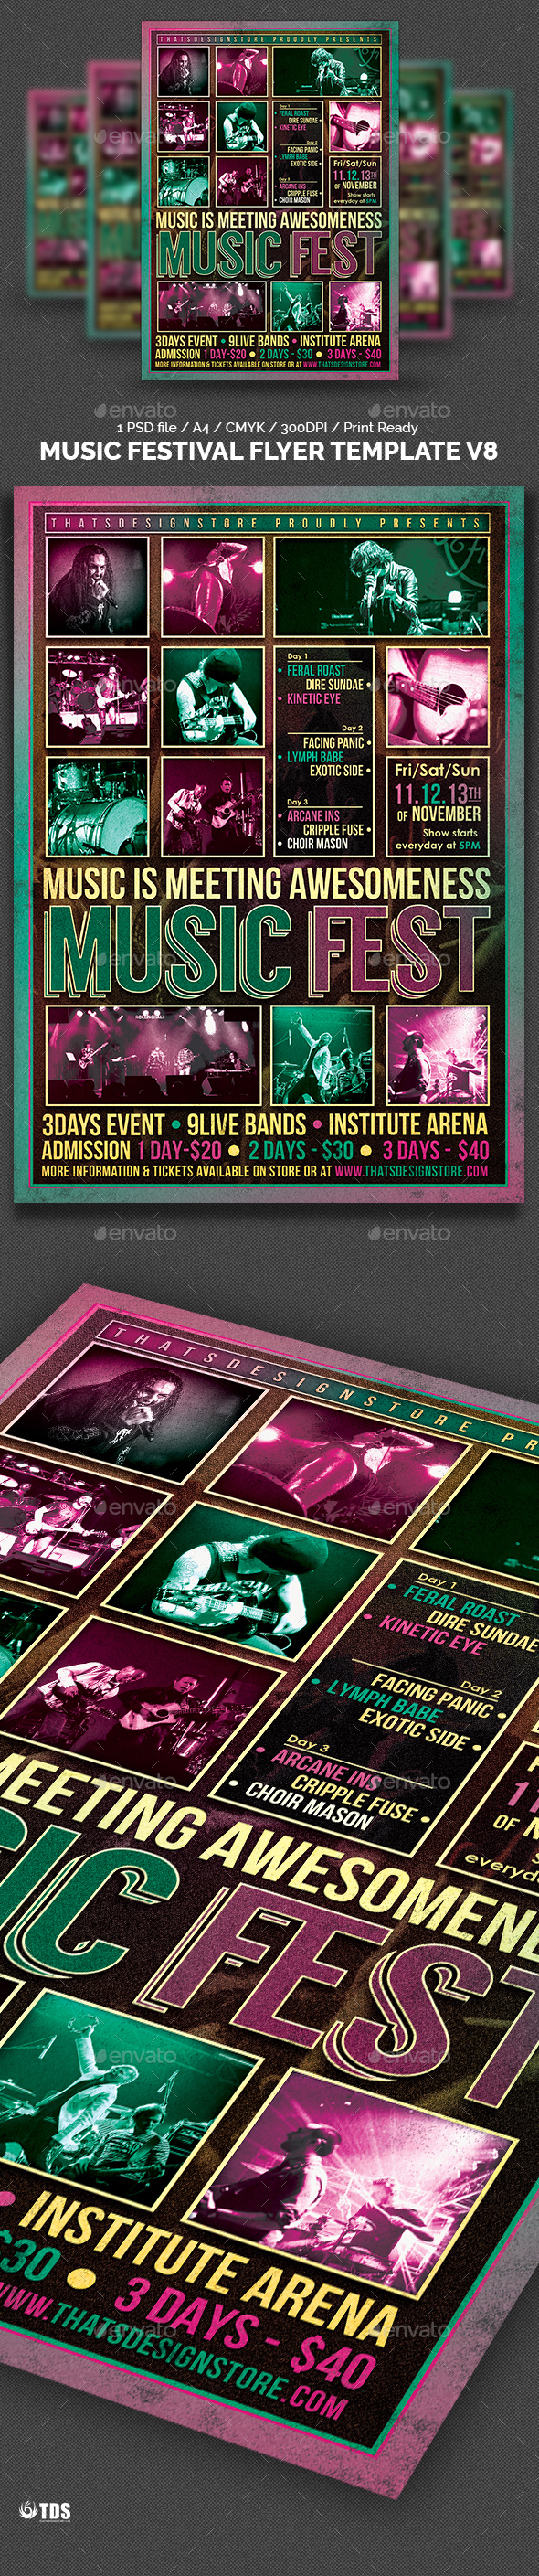 Music Festival Flyer Template V8